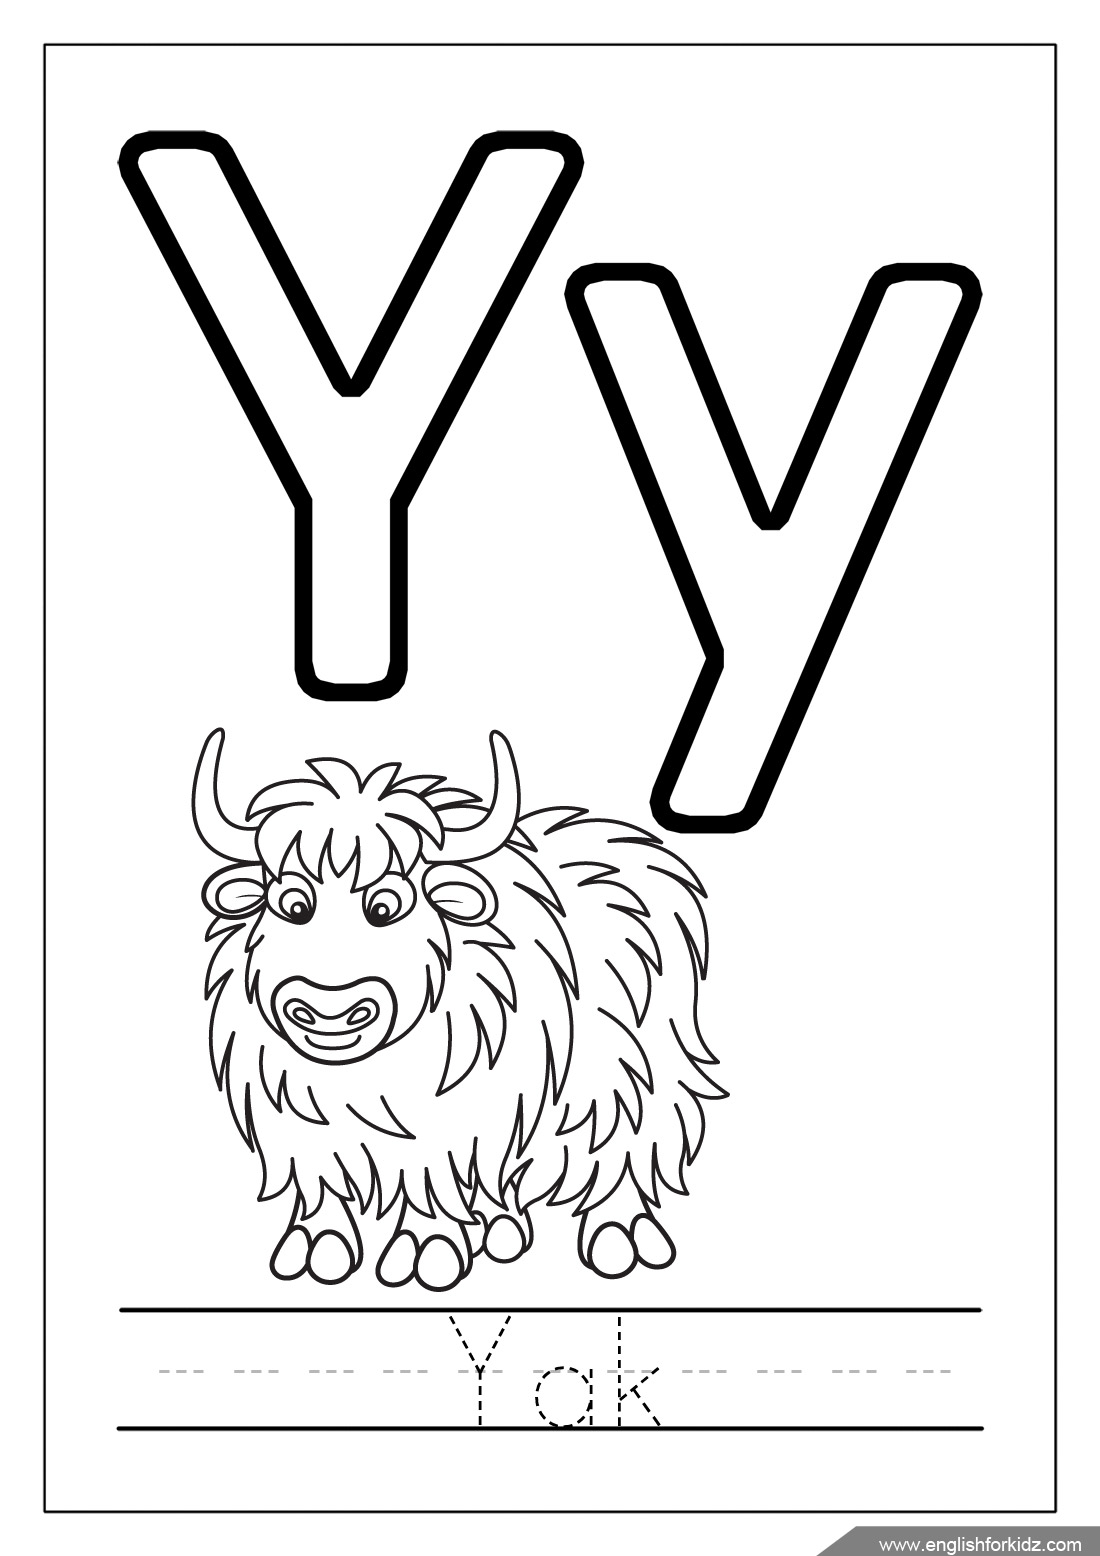 Alphabet Coloring Pages (Letters U - Z)